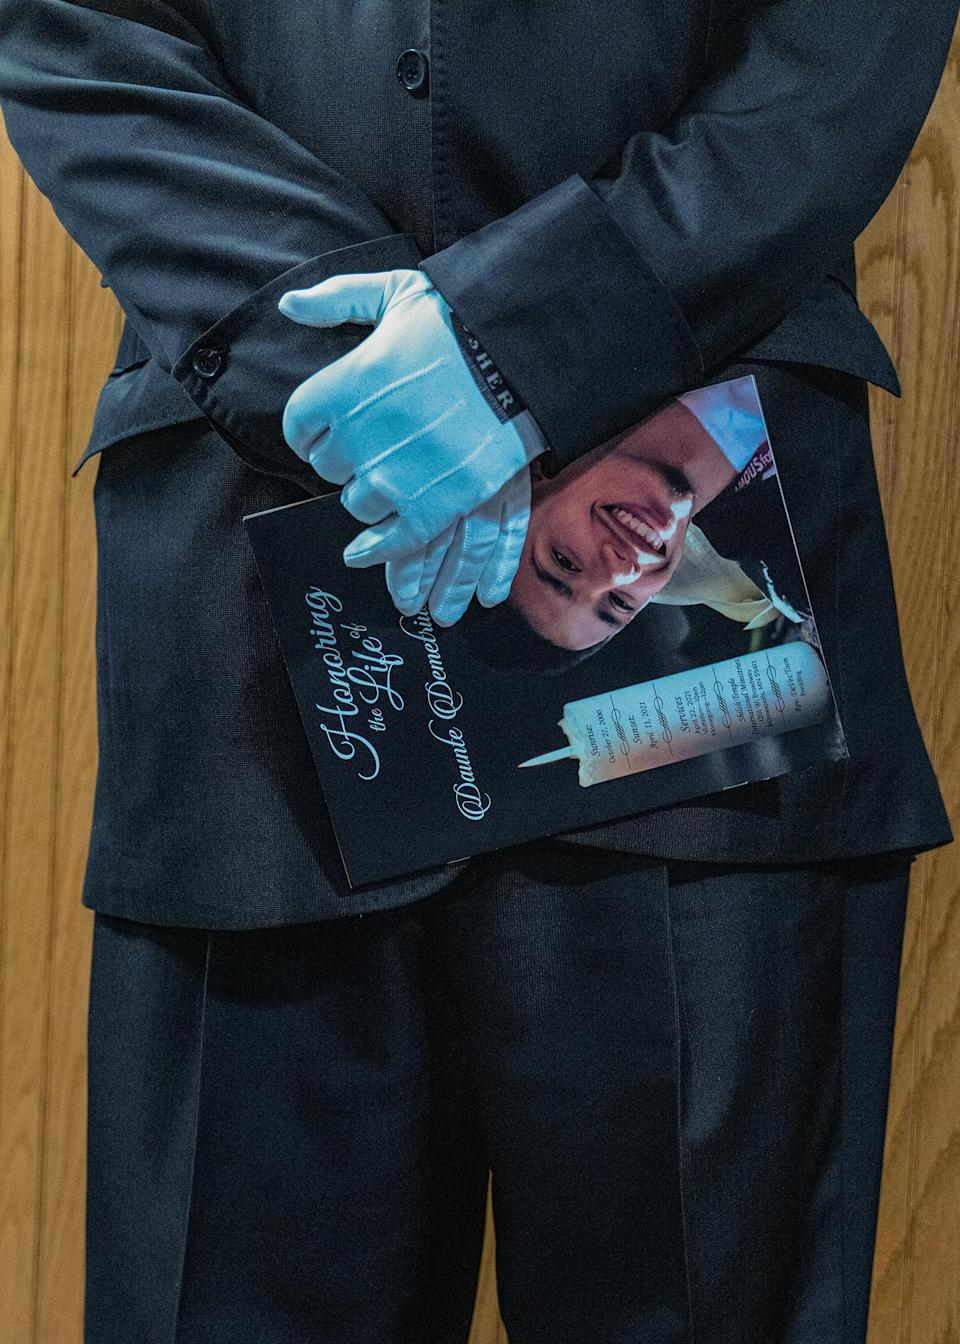 """An usher holds a memorial booklet at the funeral for 20-year-old Daunte Wright, who was shot and killed by police officer in Brooklyn Center, Minn.<span class=""""copyright"""">Ruddy Roye for TIME</span>"""